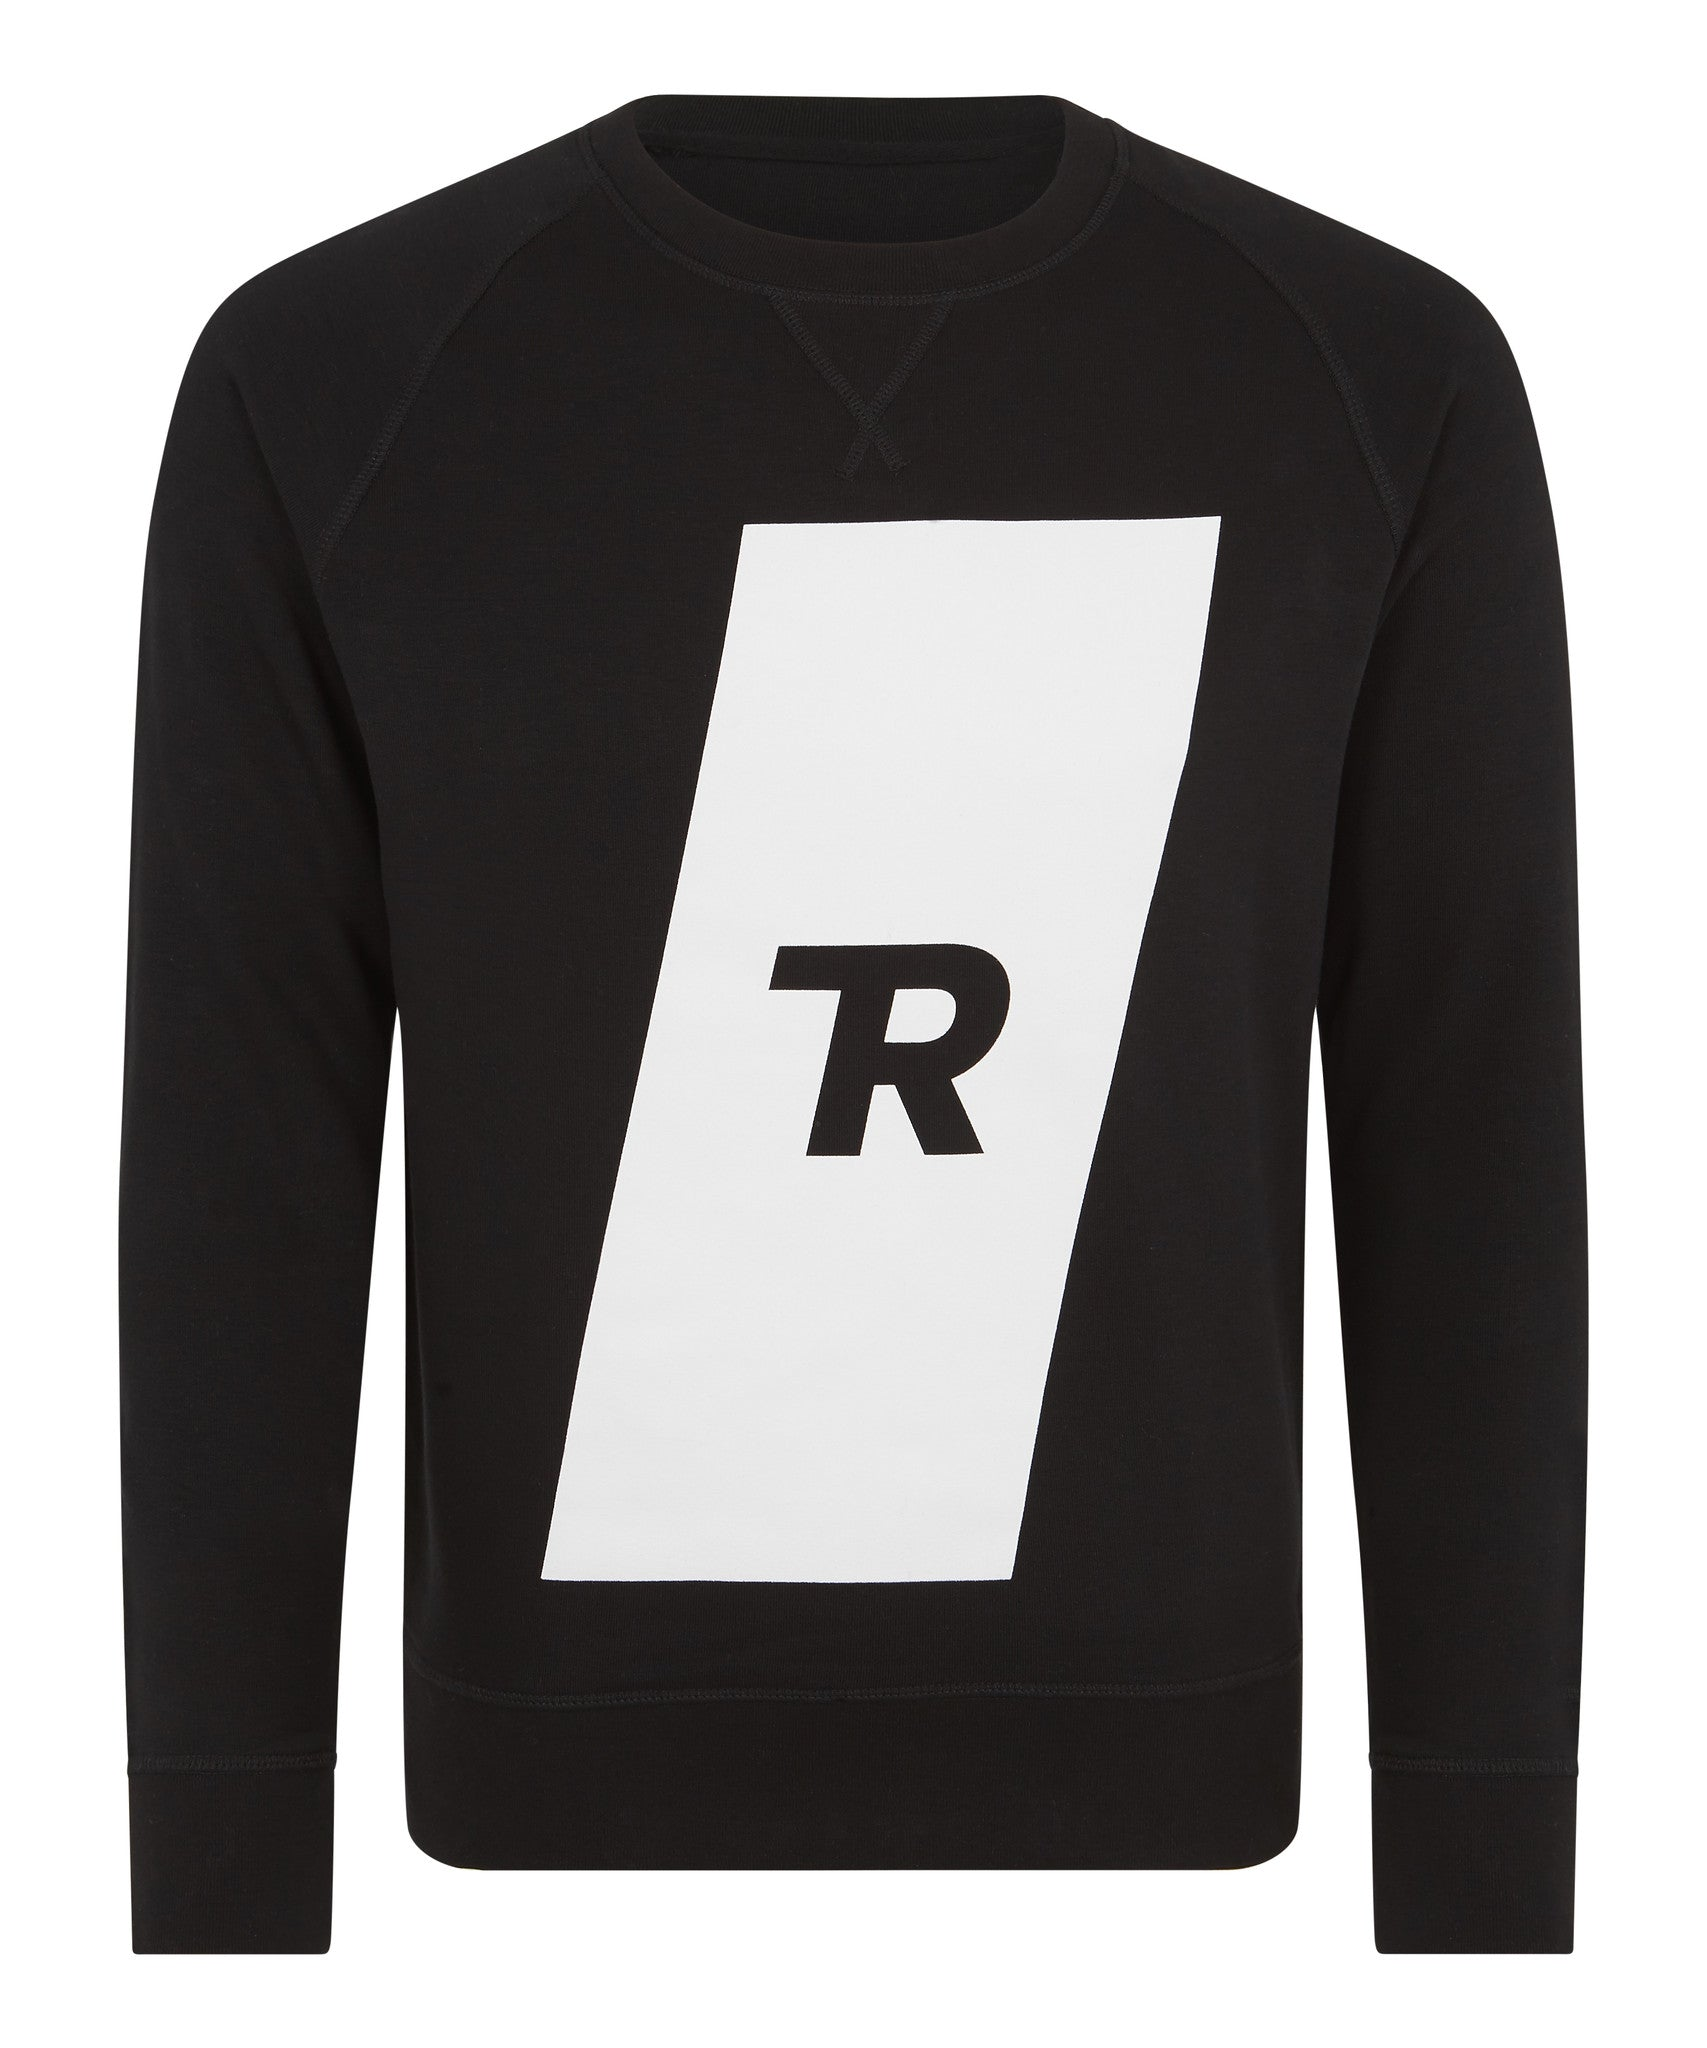 Run Free Sweatshirt (Black)